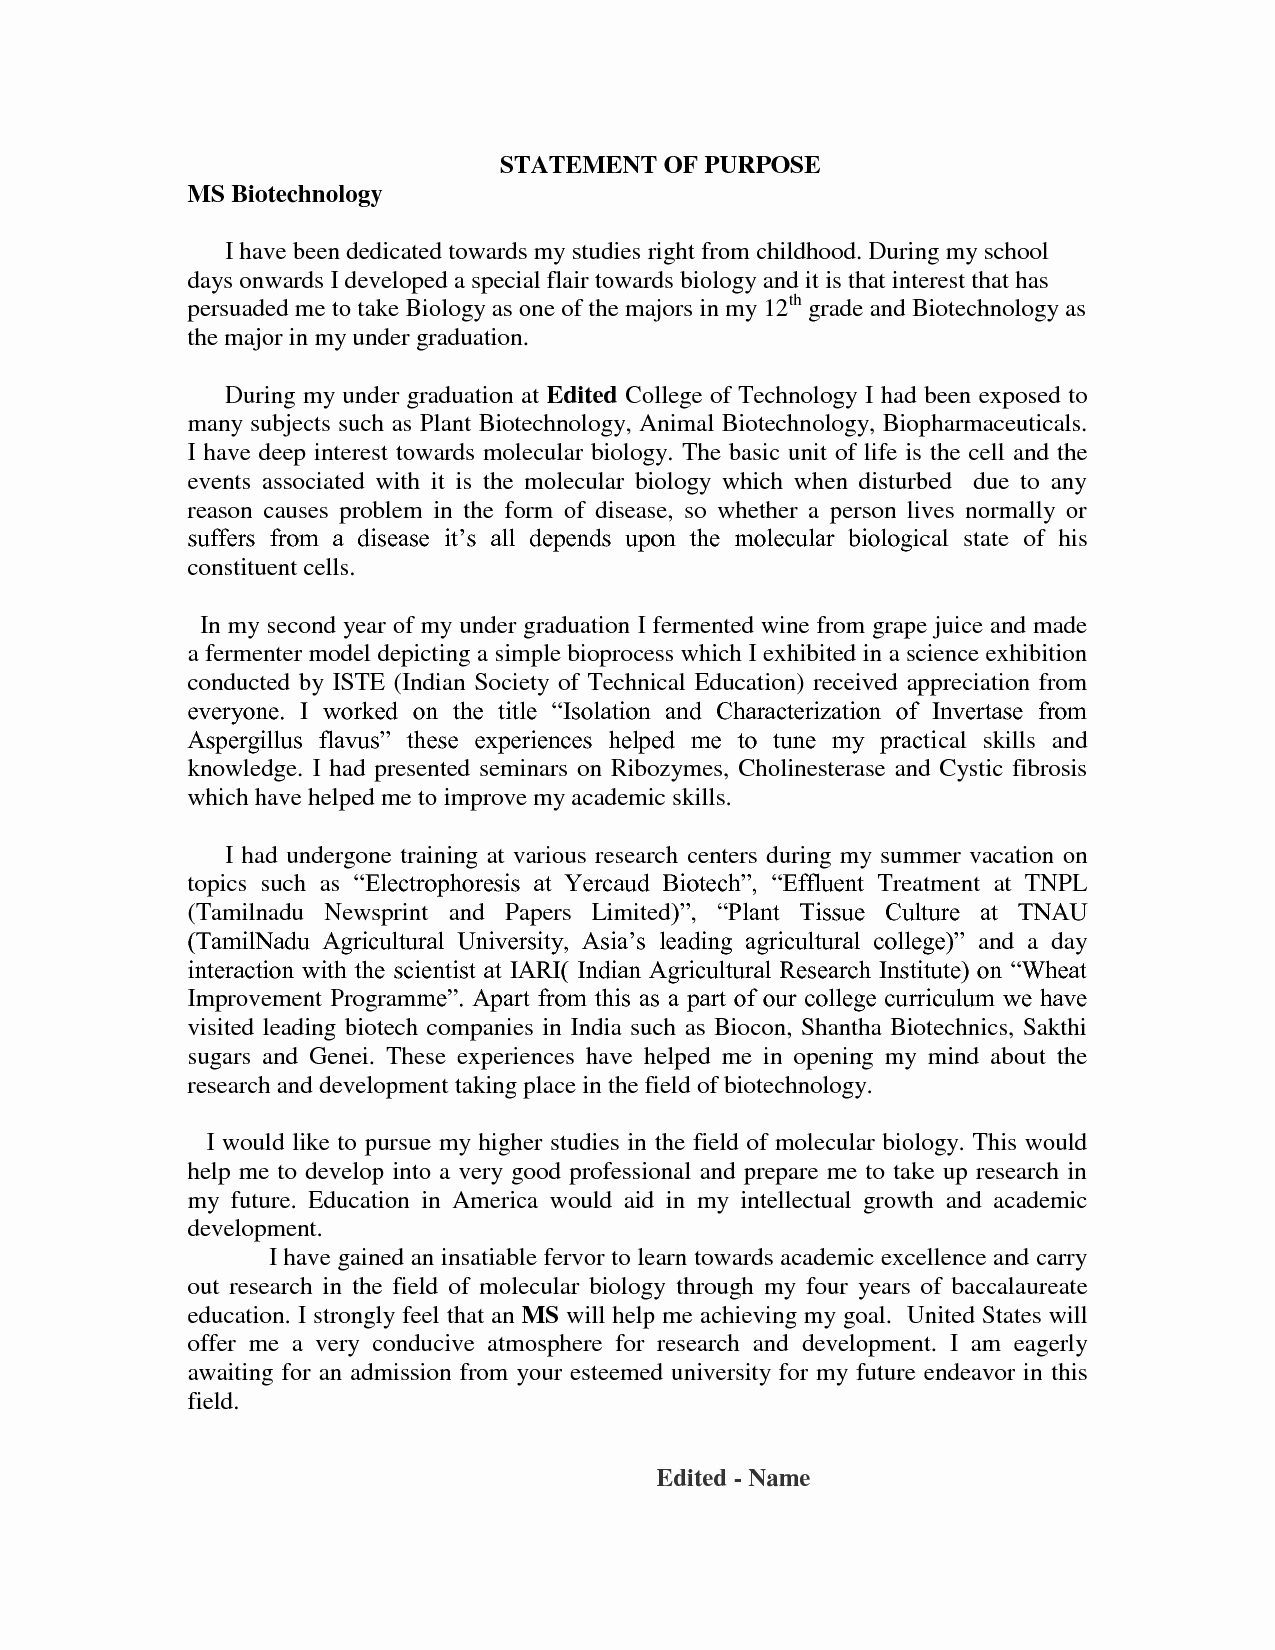 Statement Of Purpose Letter New Statement Of Purpose for Phd Writing Guide